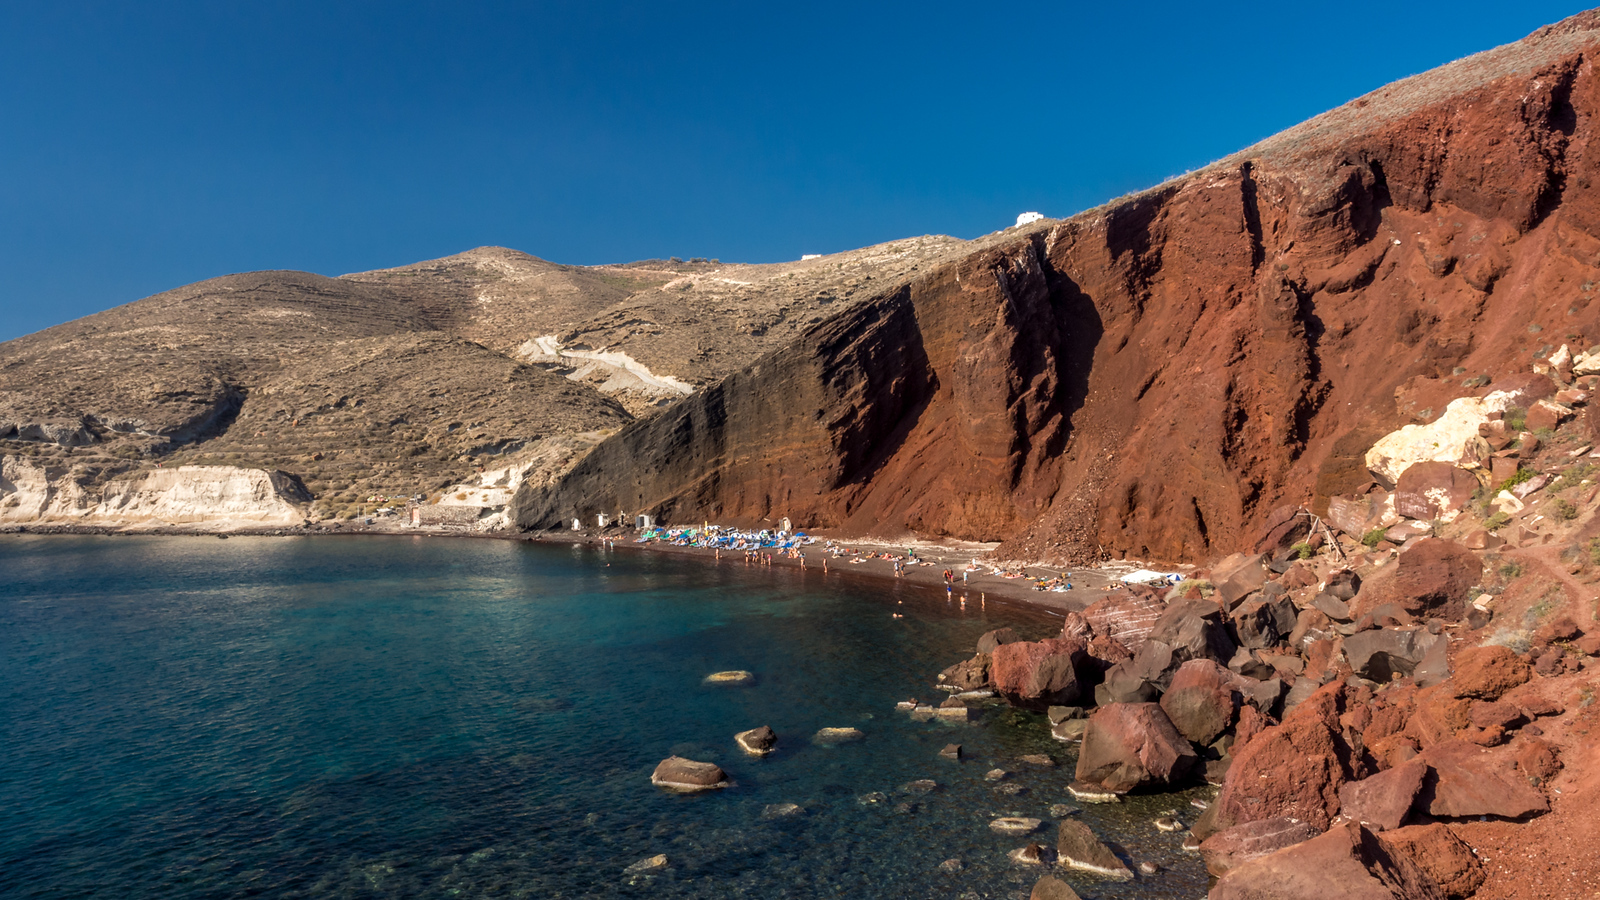 Take some time to explore the Red Beach as well.